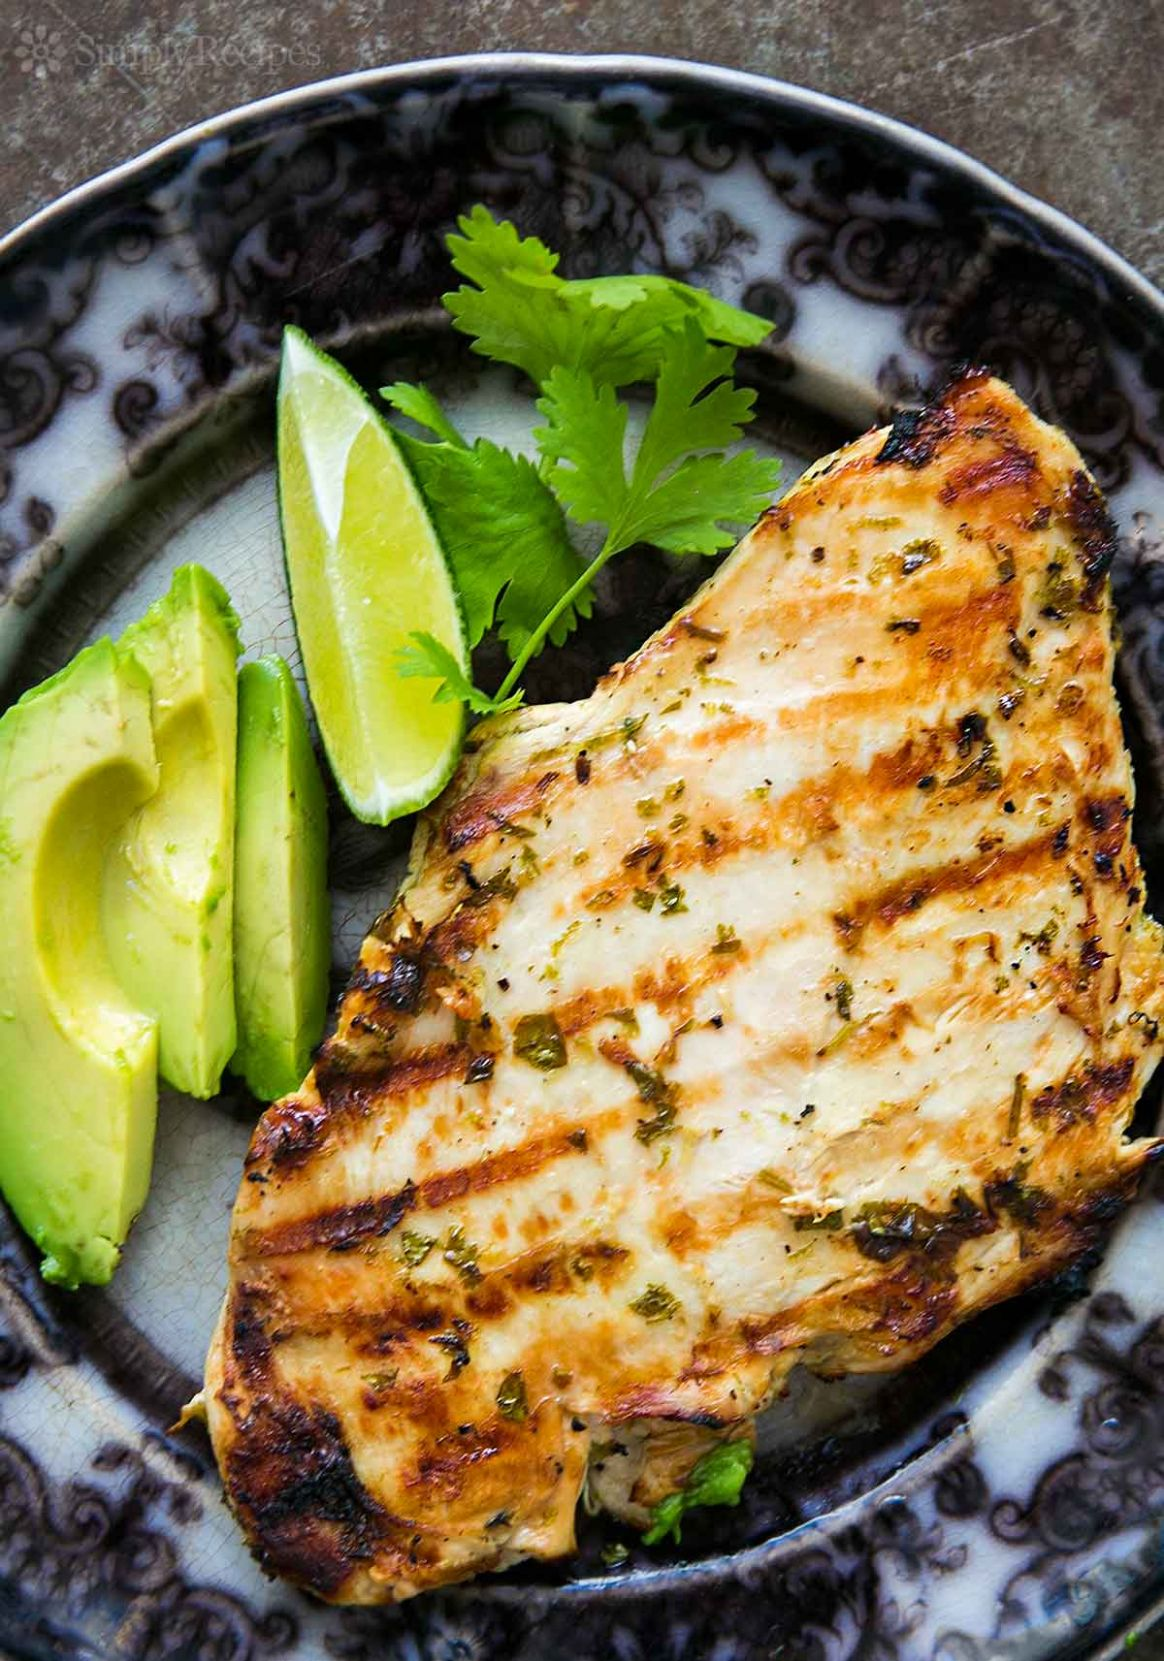 Grilled Cilantro Lime Chicken - Recipes Chicken Breast On Grill